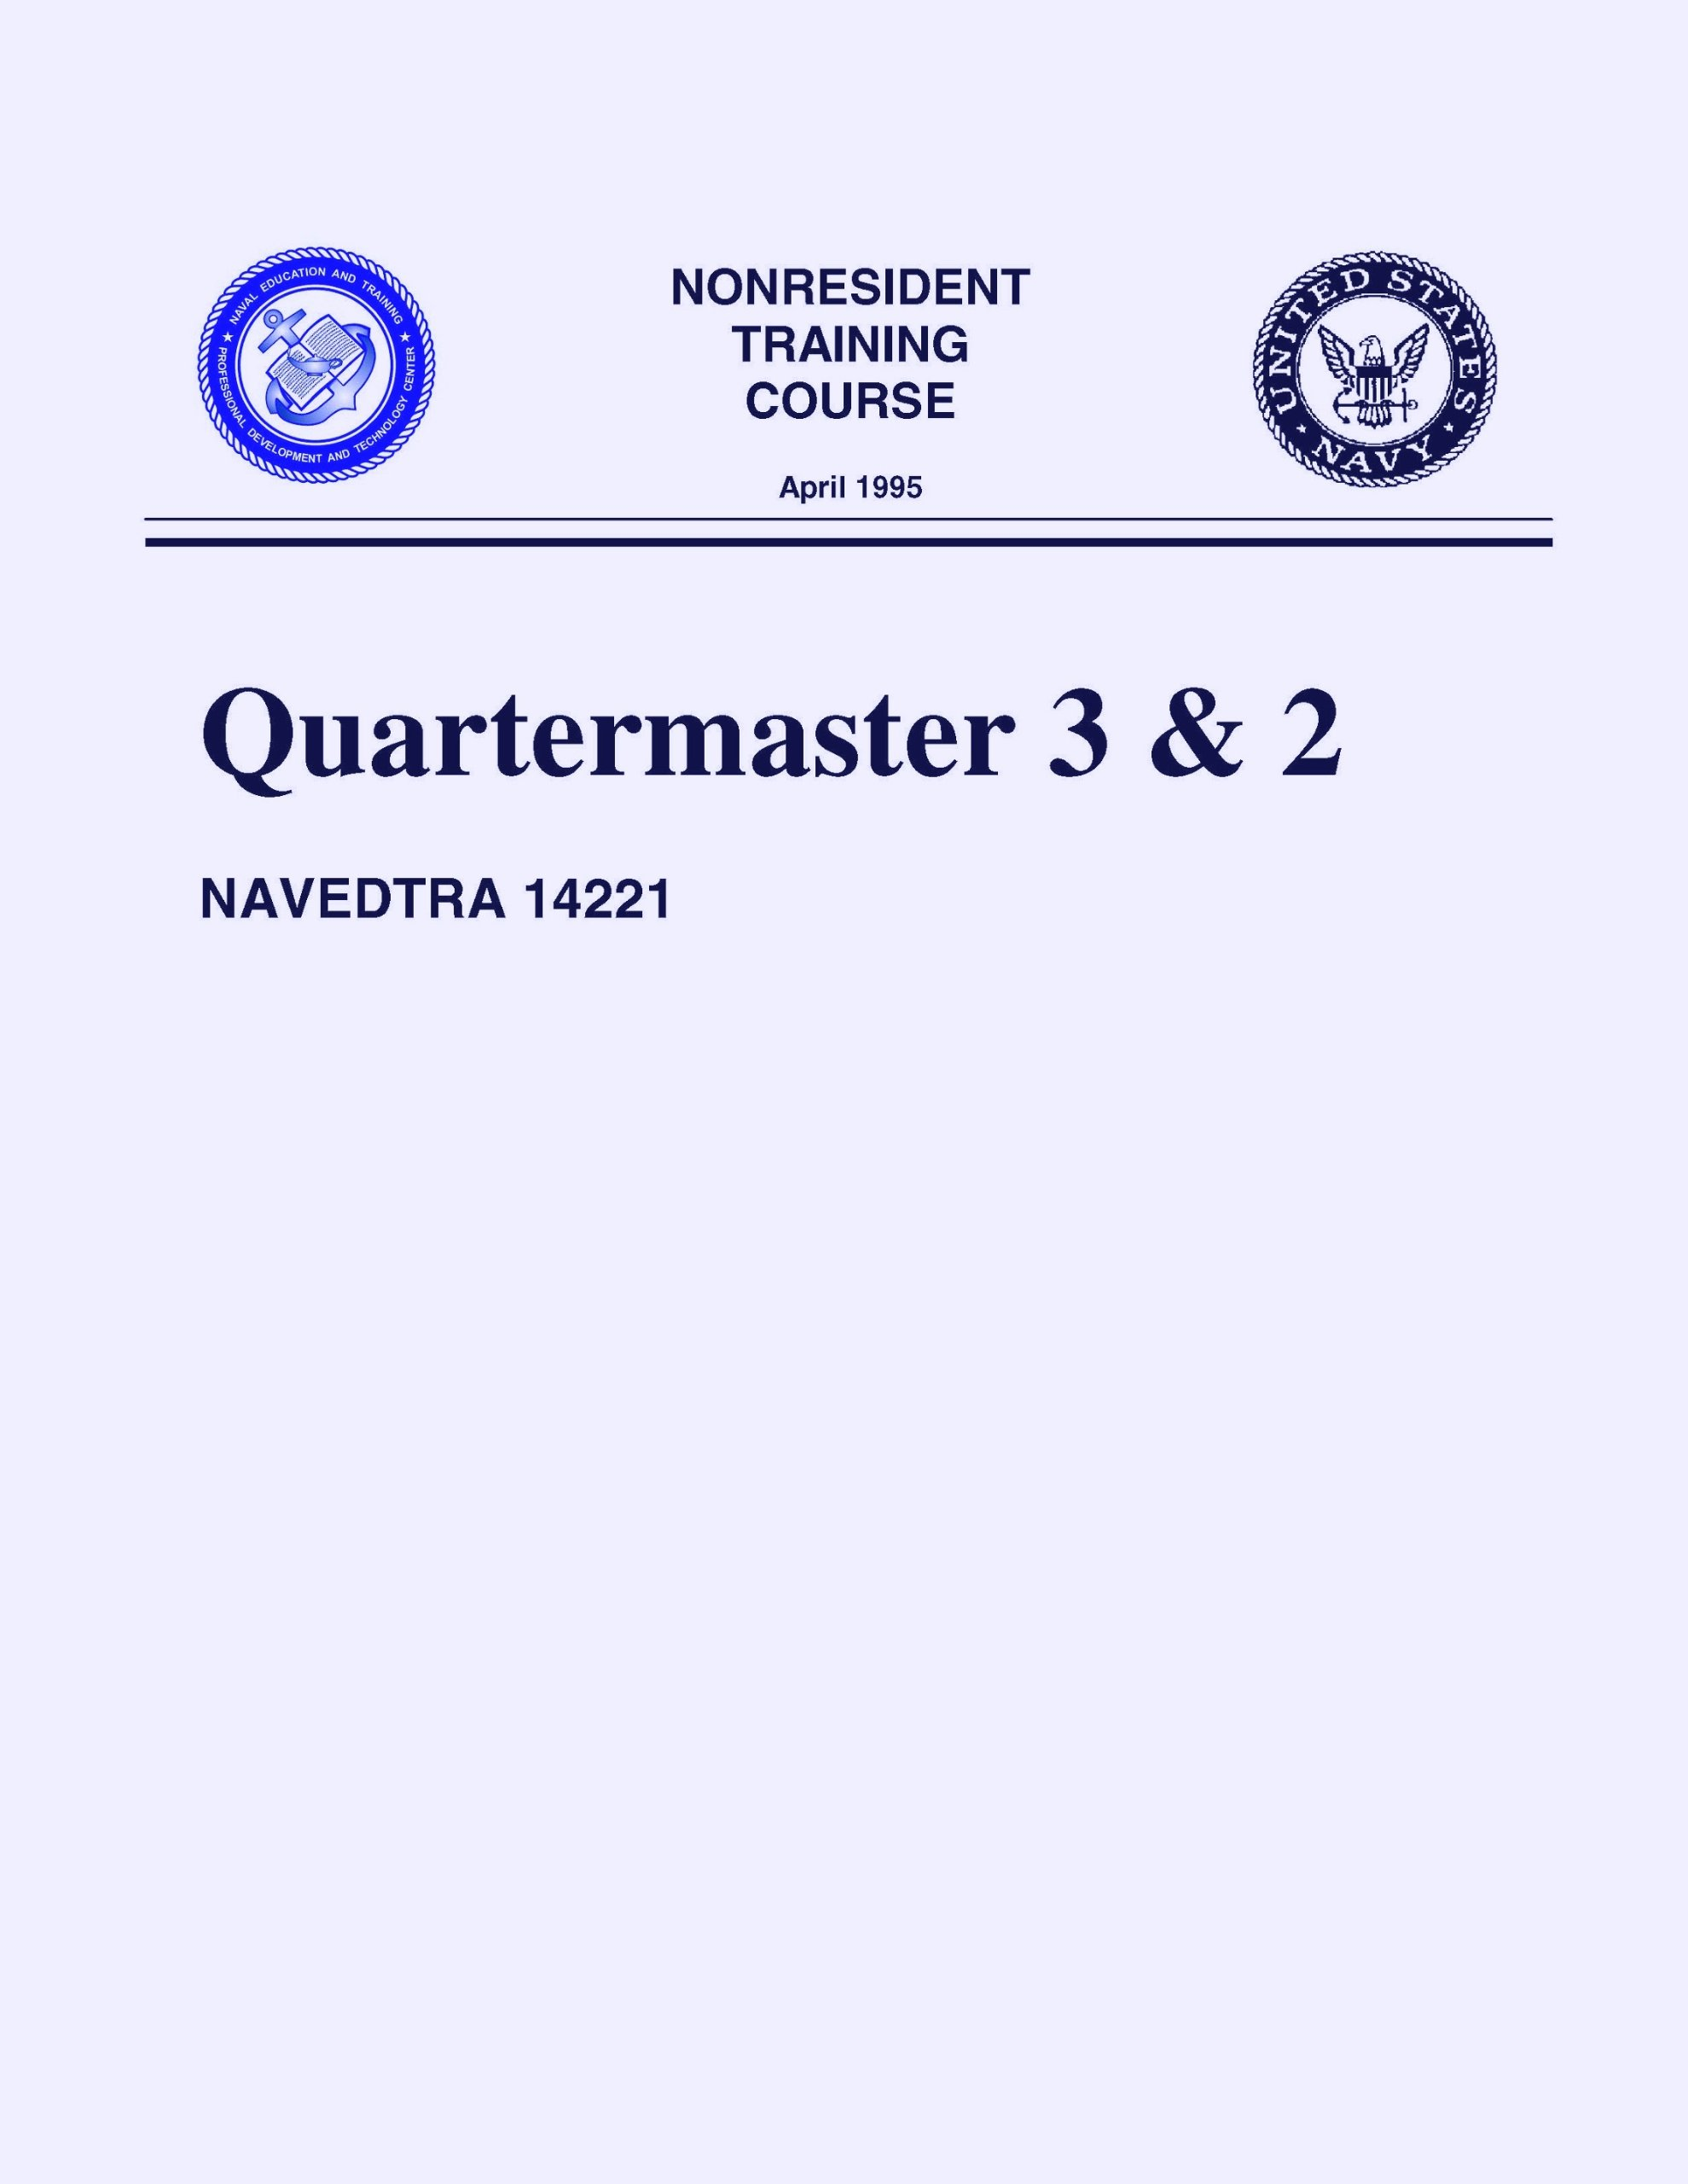 Download Quartermaster 3 & 2 NAVEDTRA 14221 (NONRESIDENT TRAINING COURSE April 1995) pdf